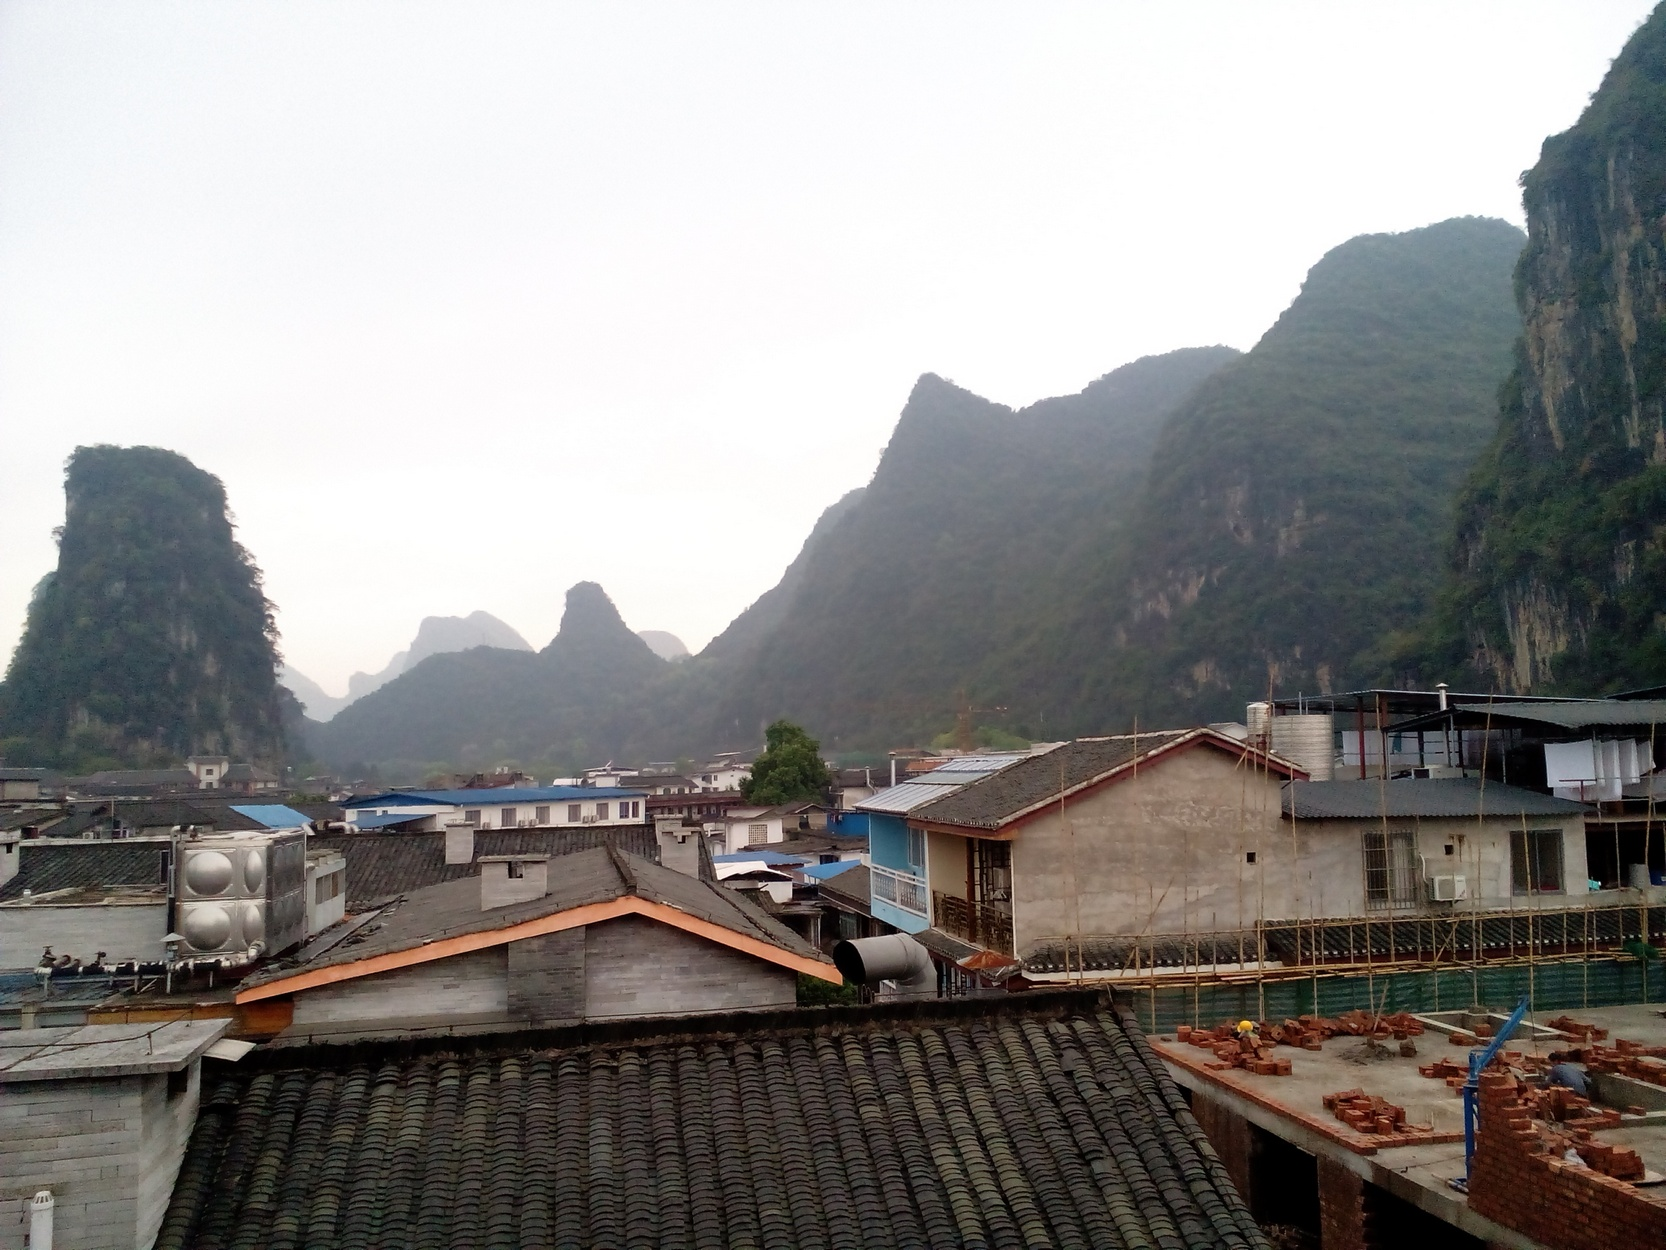 Yangshuo as seen from the hostel, rainy day